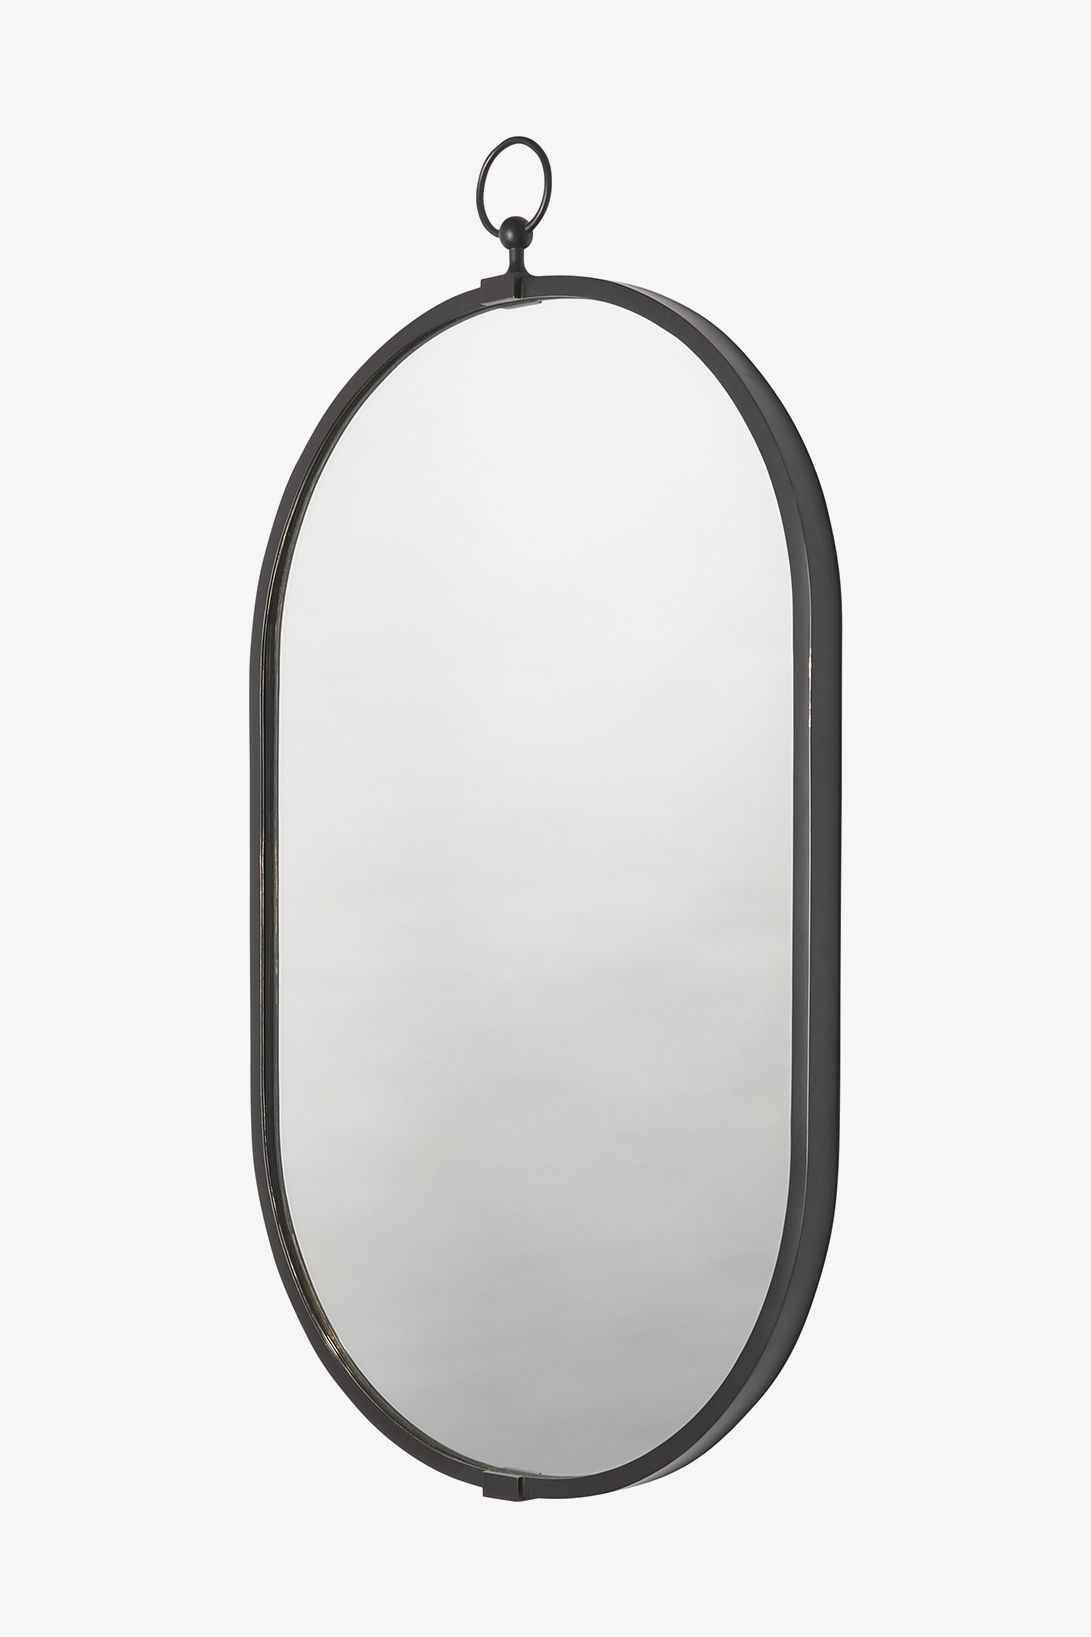 Concord Wall Mounted Oval Mirror 19 X 1 1 4 X 33 1 4 Oval Mirror Oval Wall Mirror Mirror